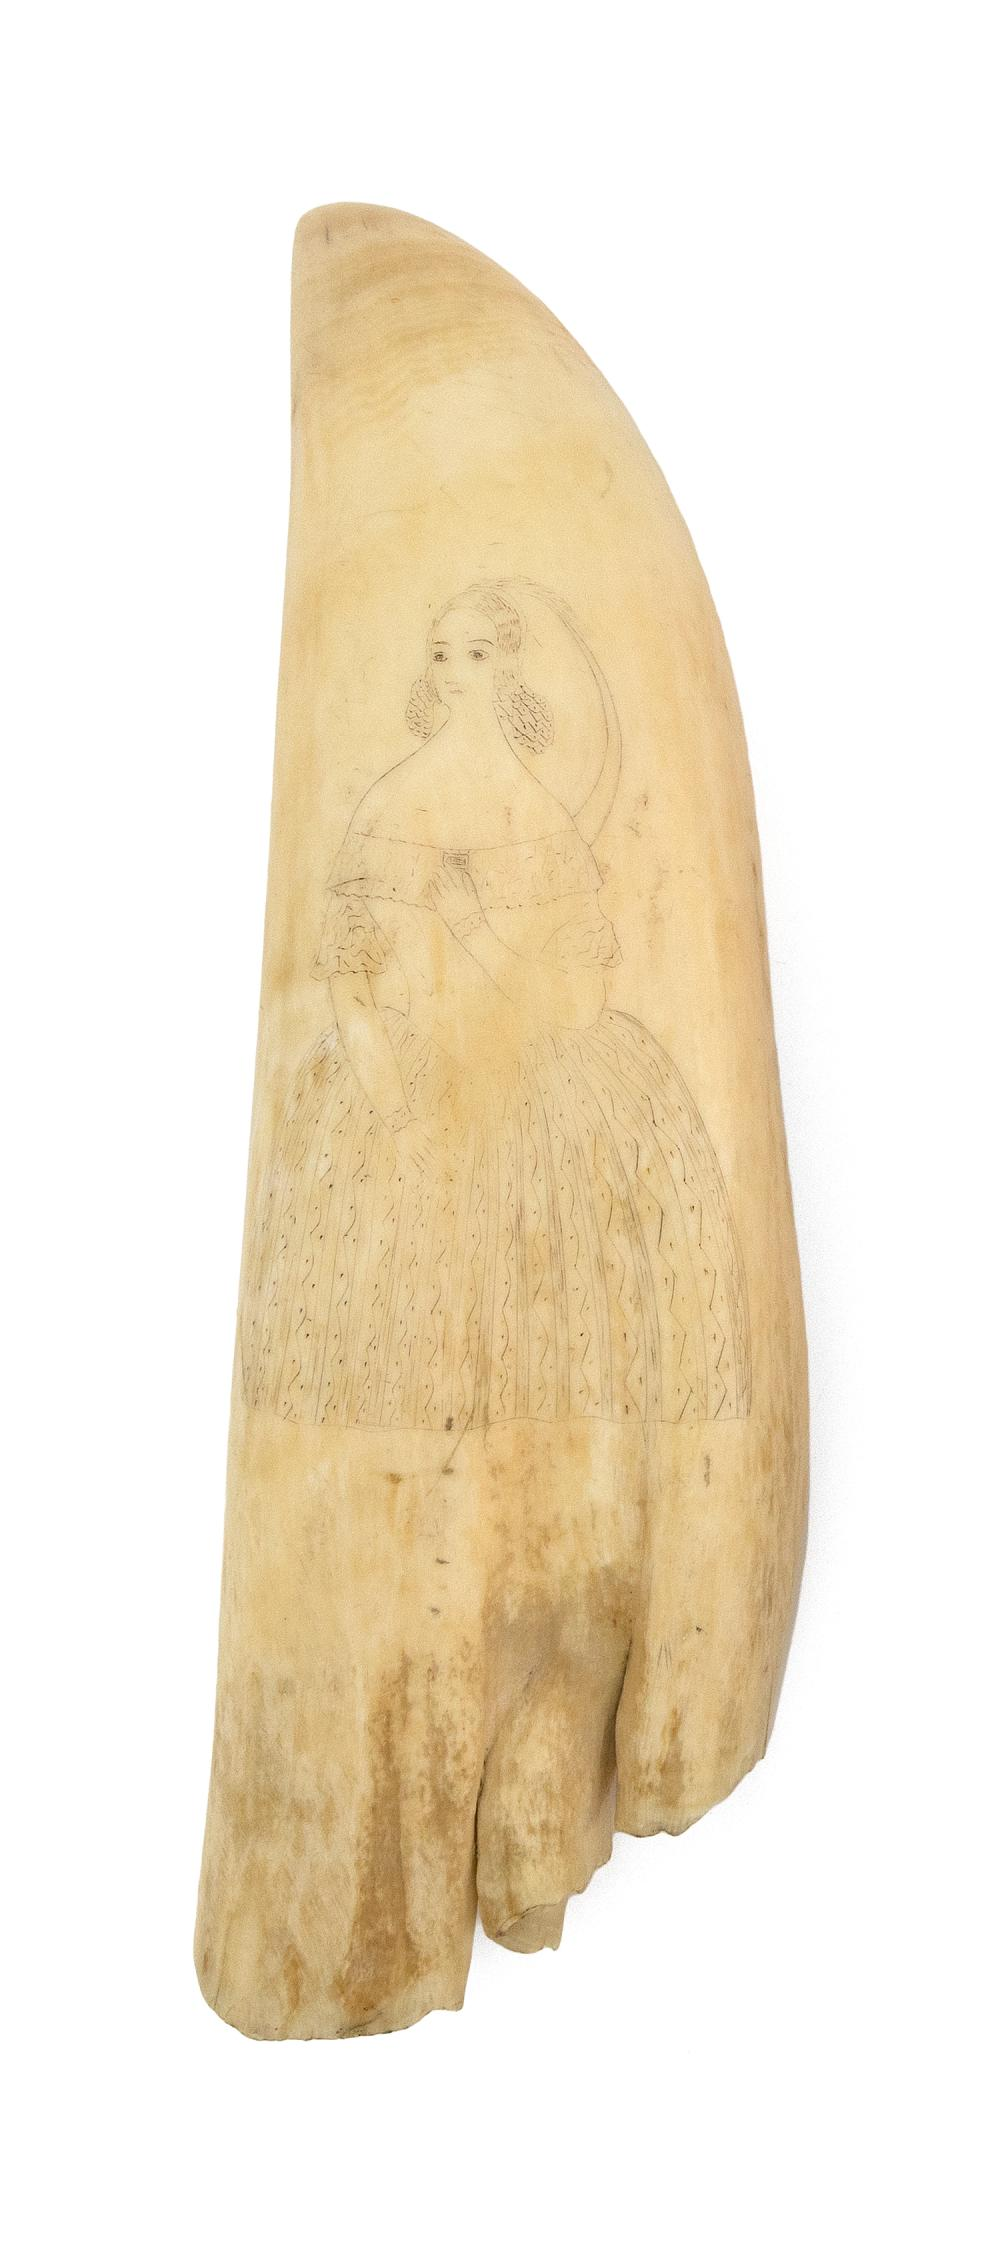 SCRIMSHAW WHALE'S TOOTH DEPICTING LADIES One side depicts a woman in a bonnet and patterned dress holding a fan in her right hand. O..